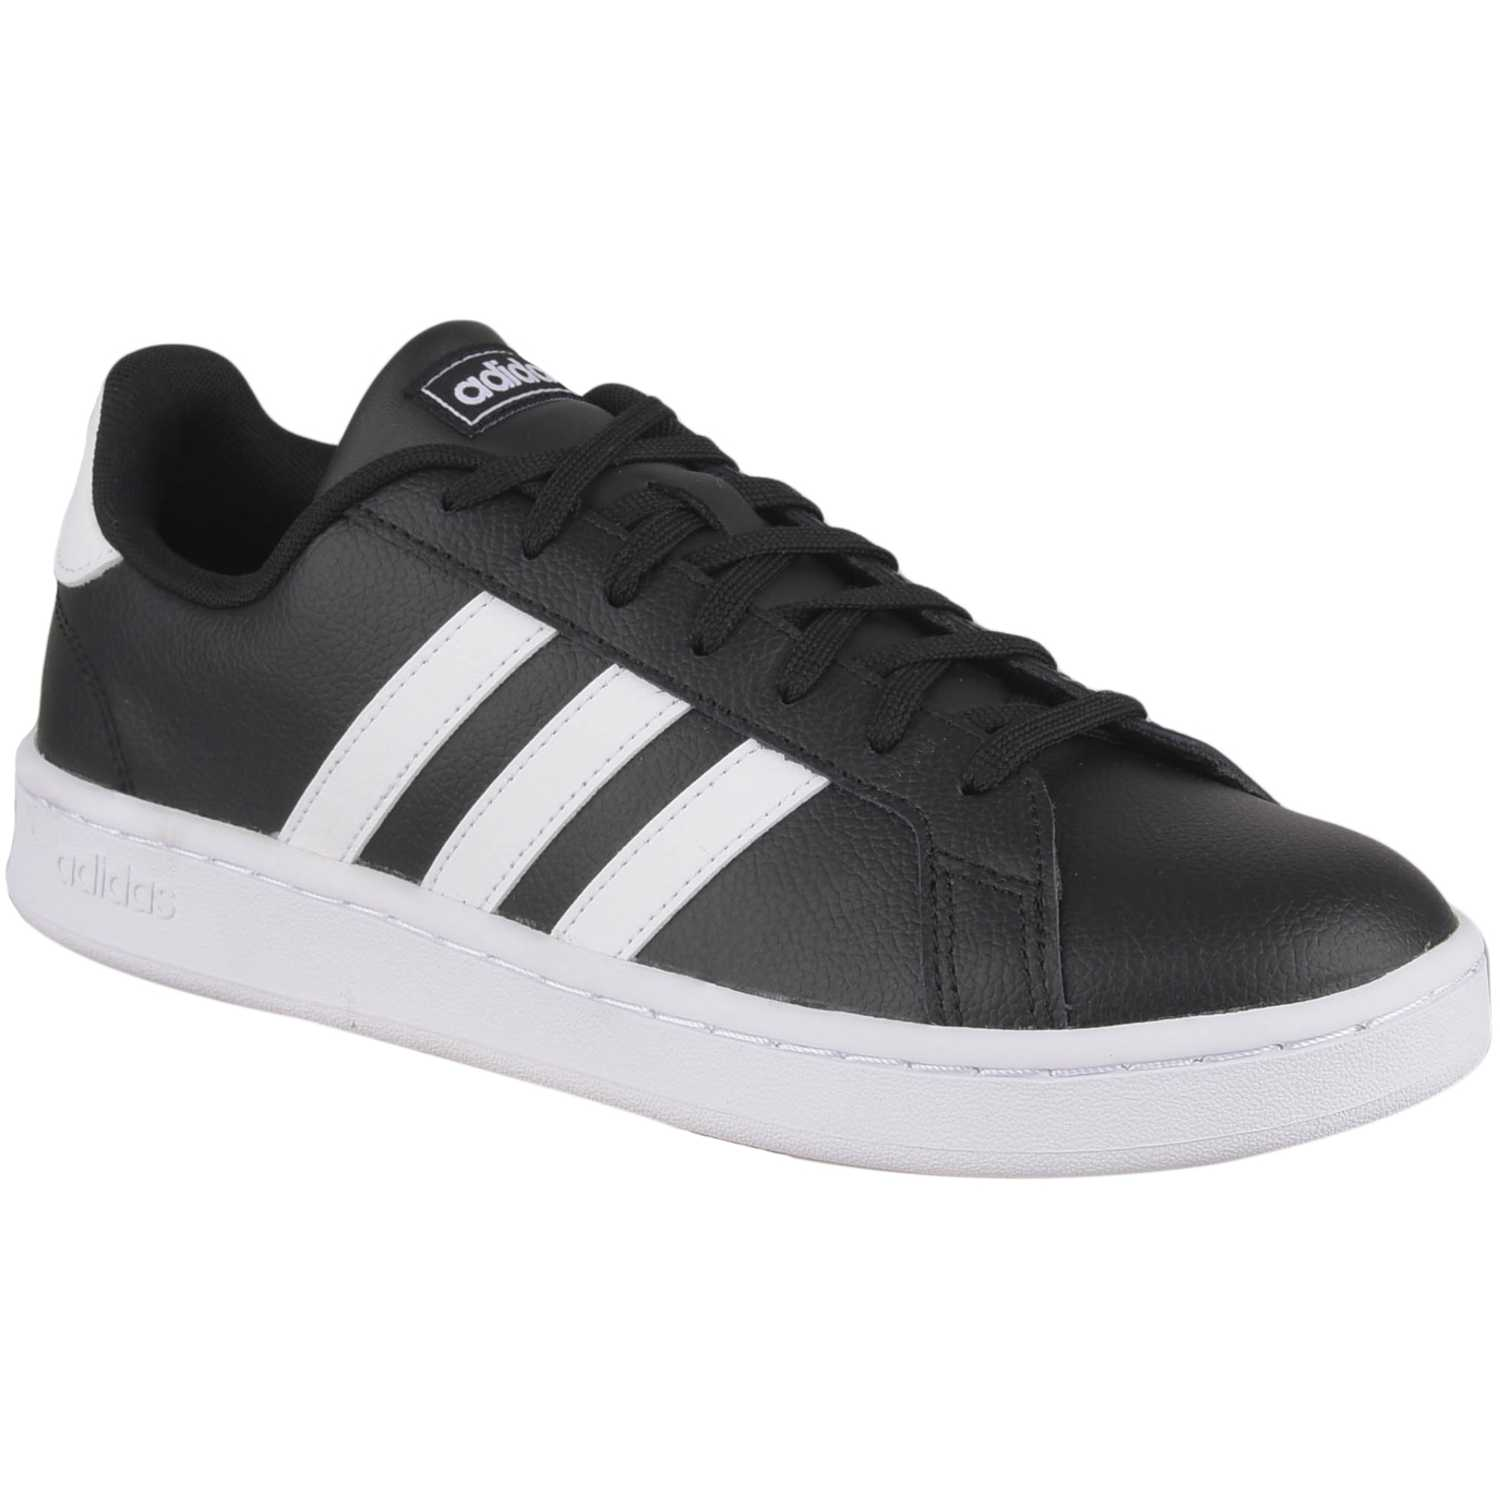 Adidas GRAND COURT Negro / blanco Walking